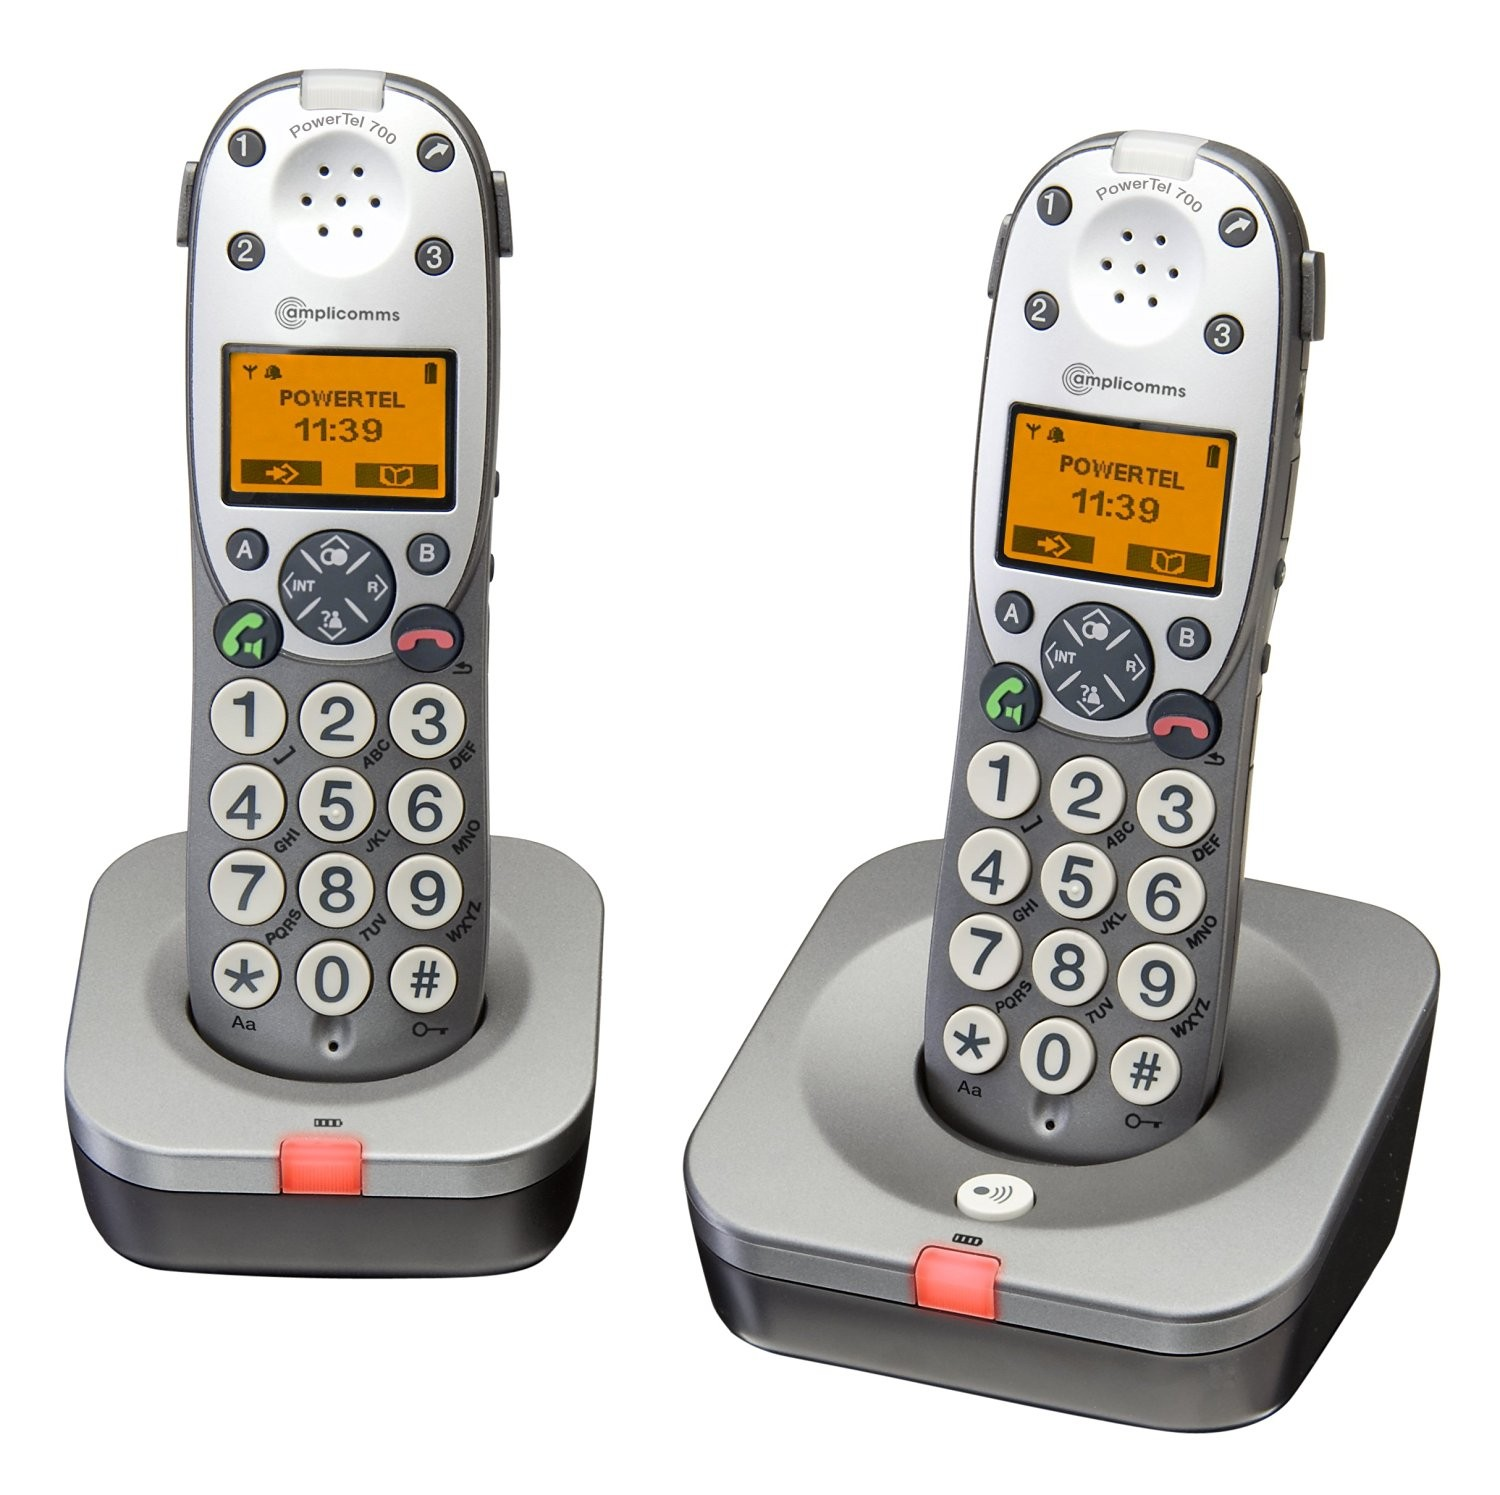 Amplicomms Powertel 702 Amplified Twin DECT Cordless Telephone - Twin Pack